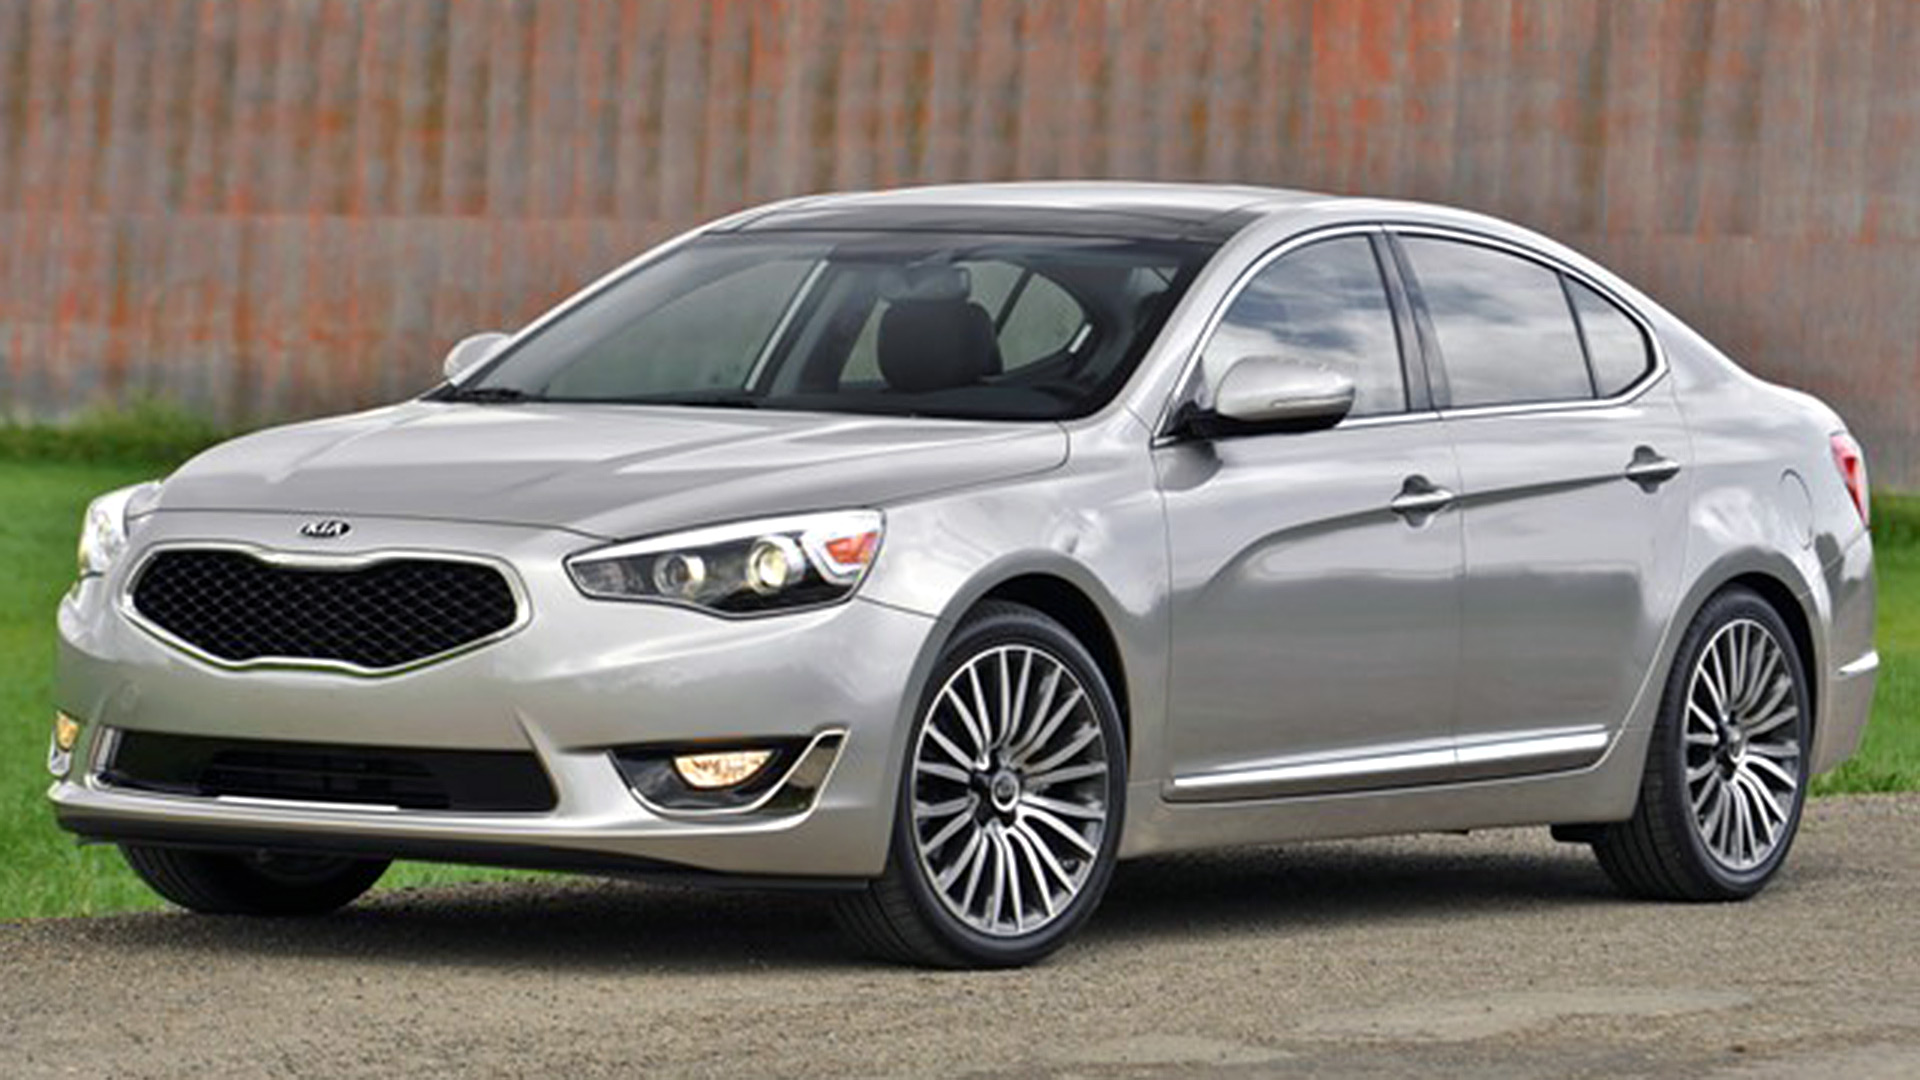 2015 Kia Cadenza 4-door sedan